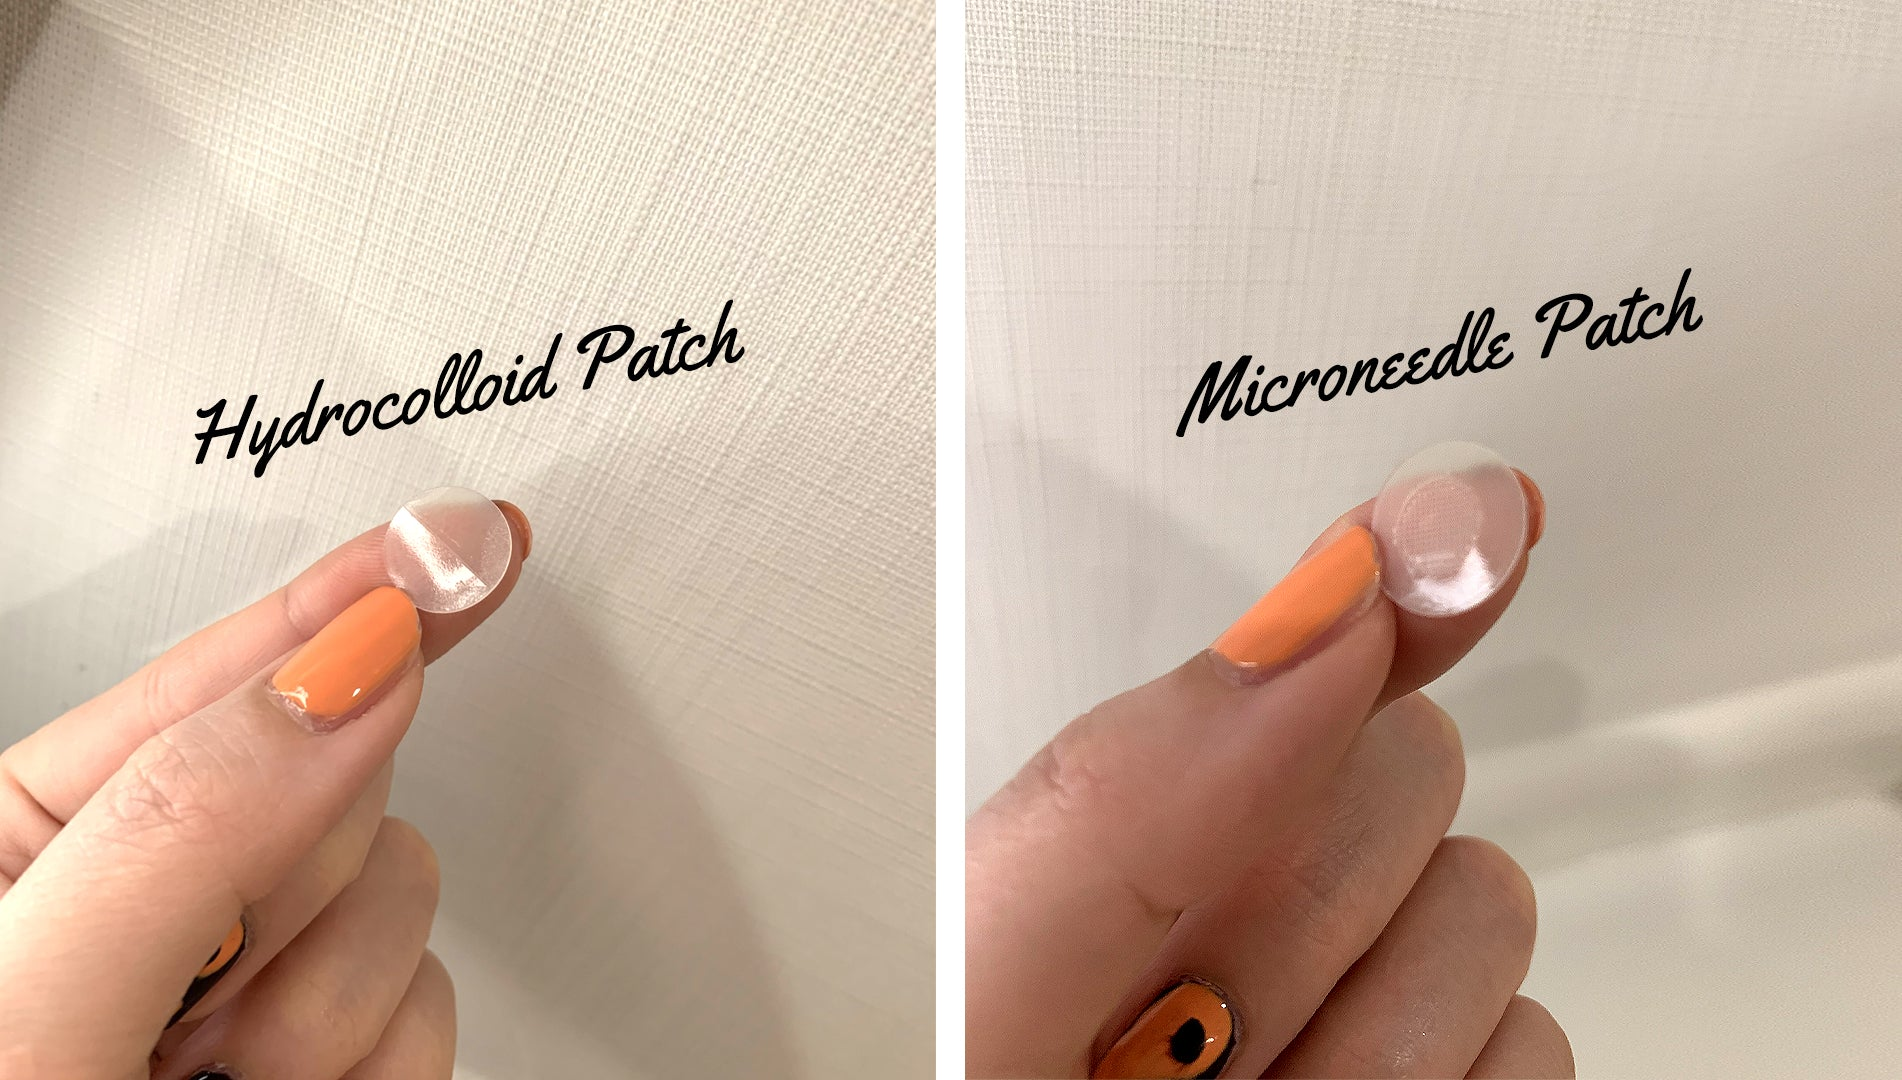 hydrocolloid and microneedle patch on a fingertip